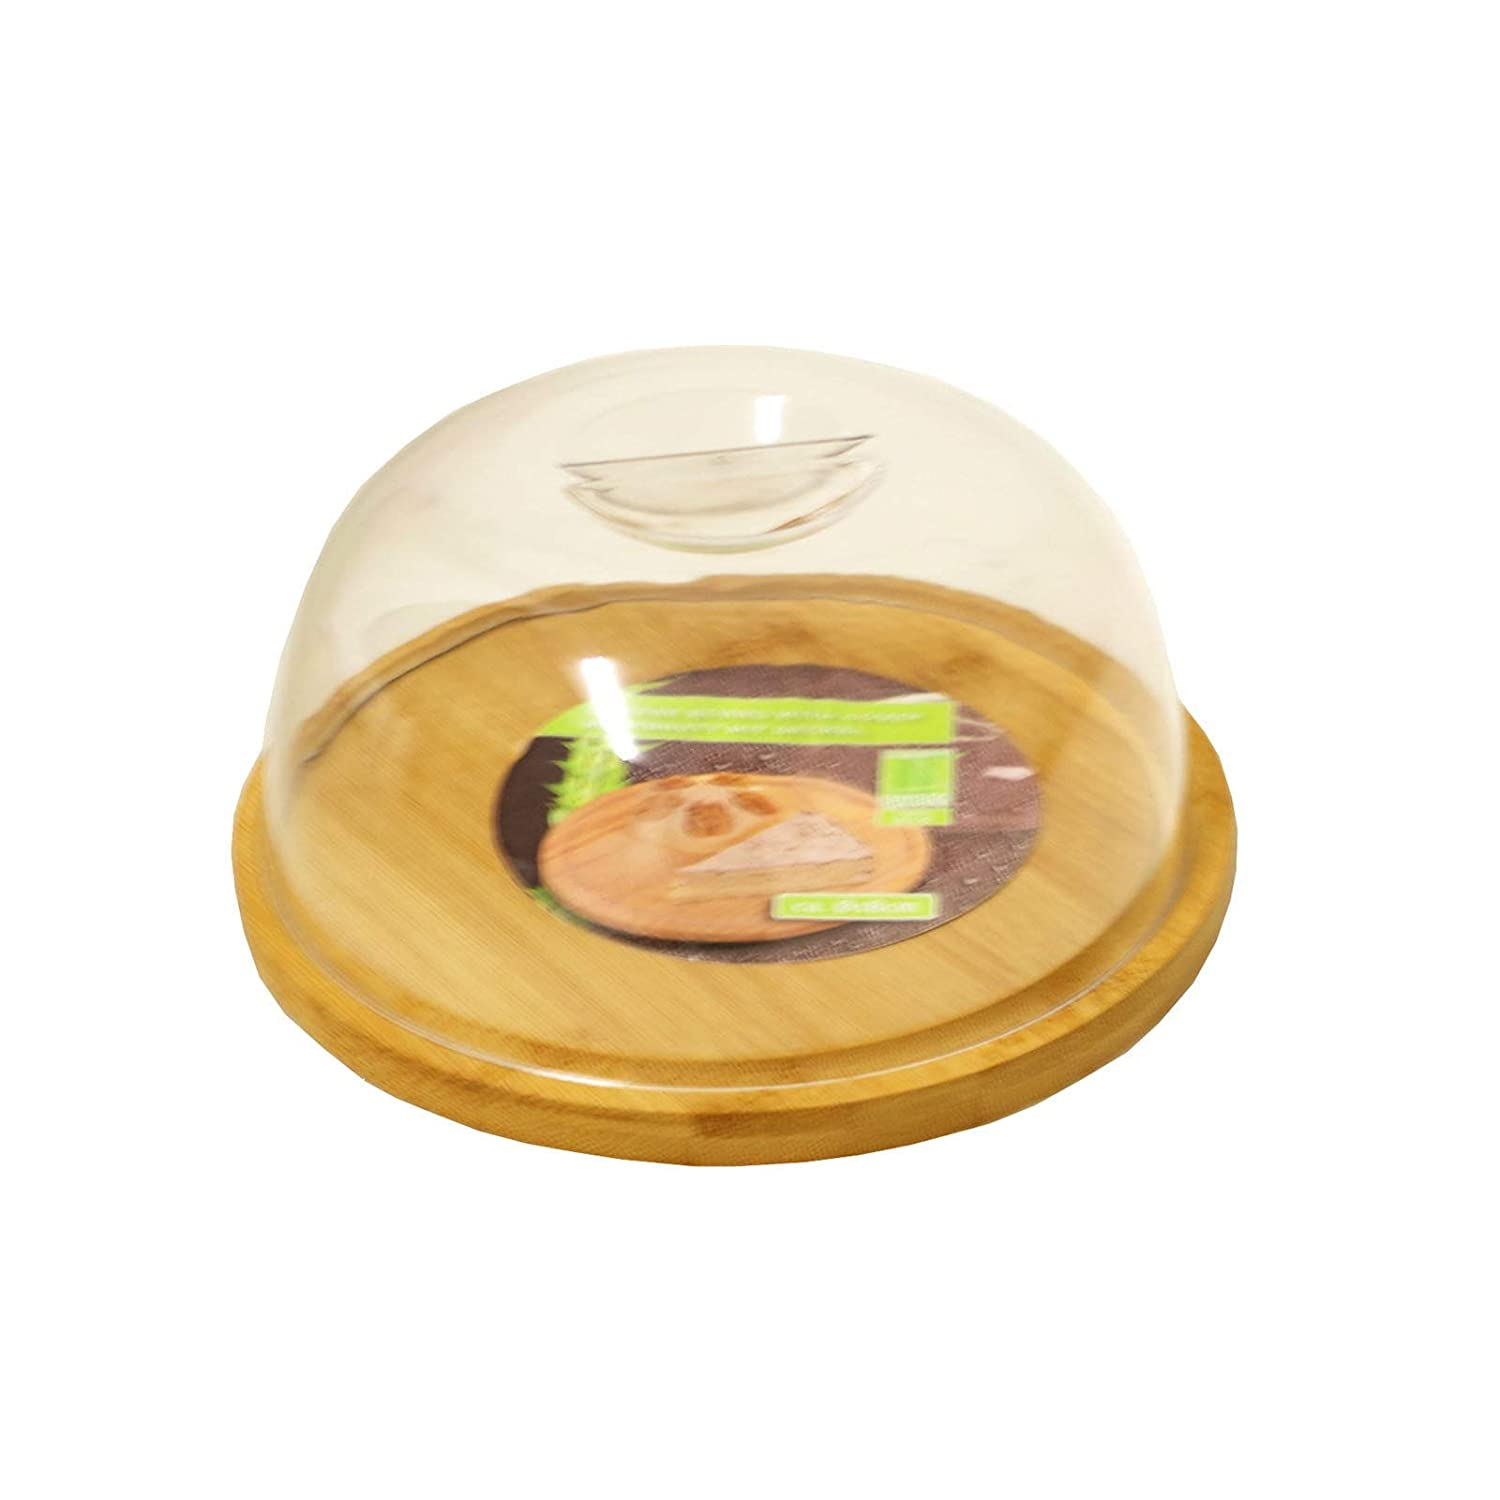 Round Bamboo Cheese Board with Plastic Cover For Keeping and Serving   B00JUP8S4Q